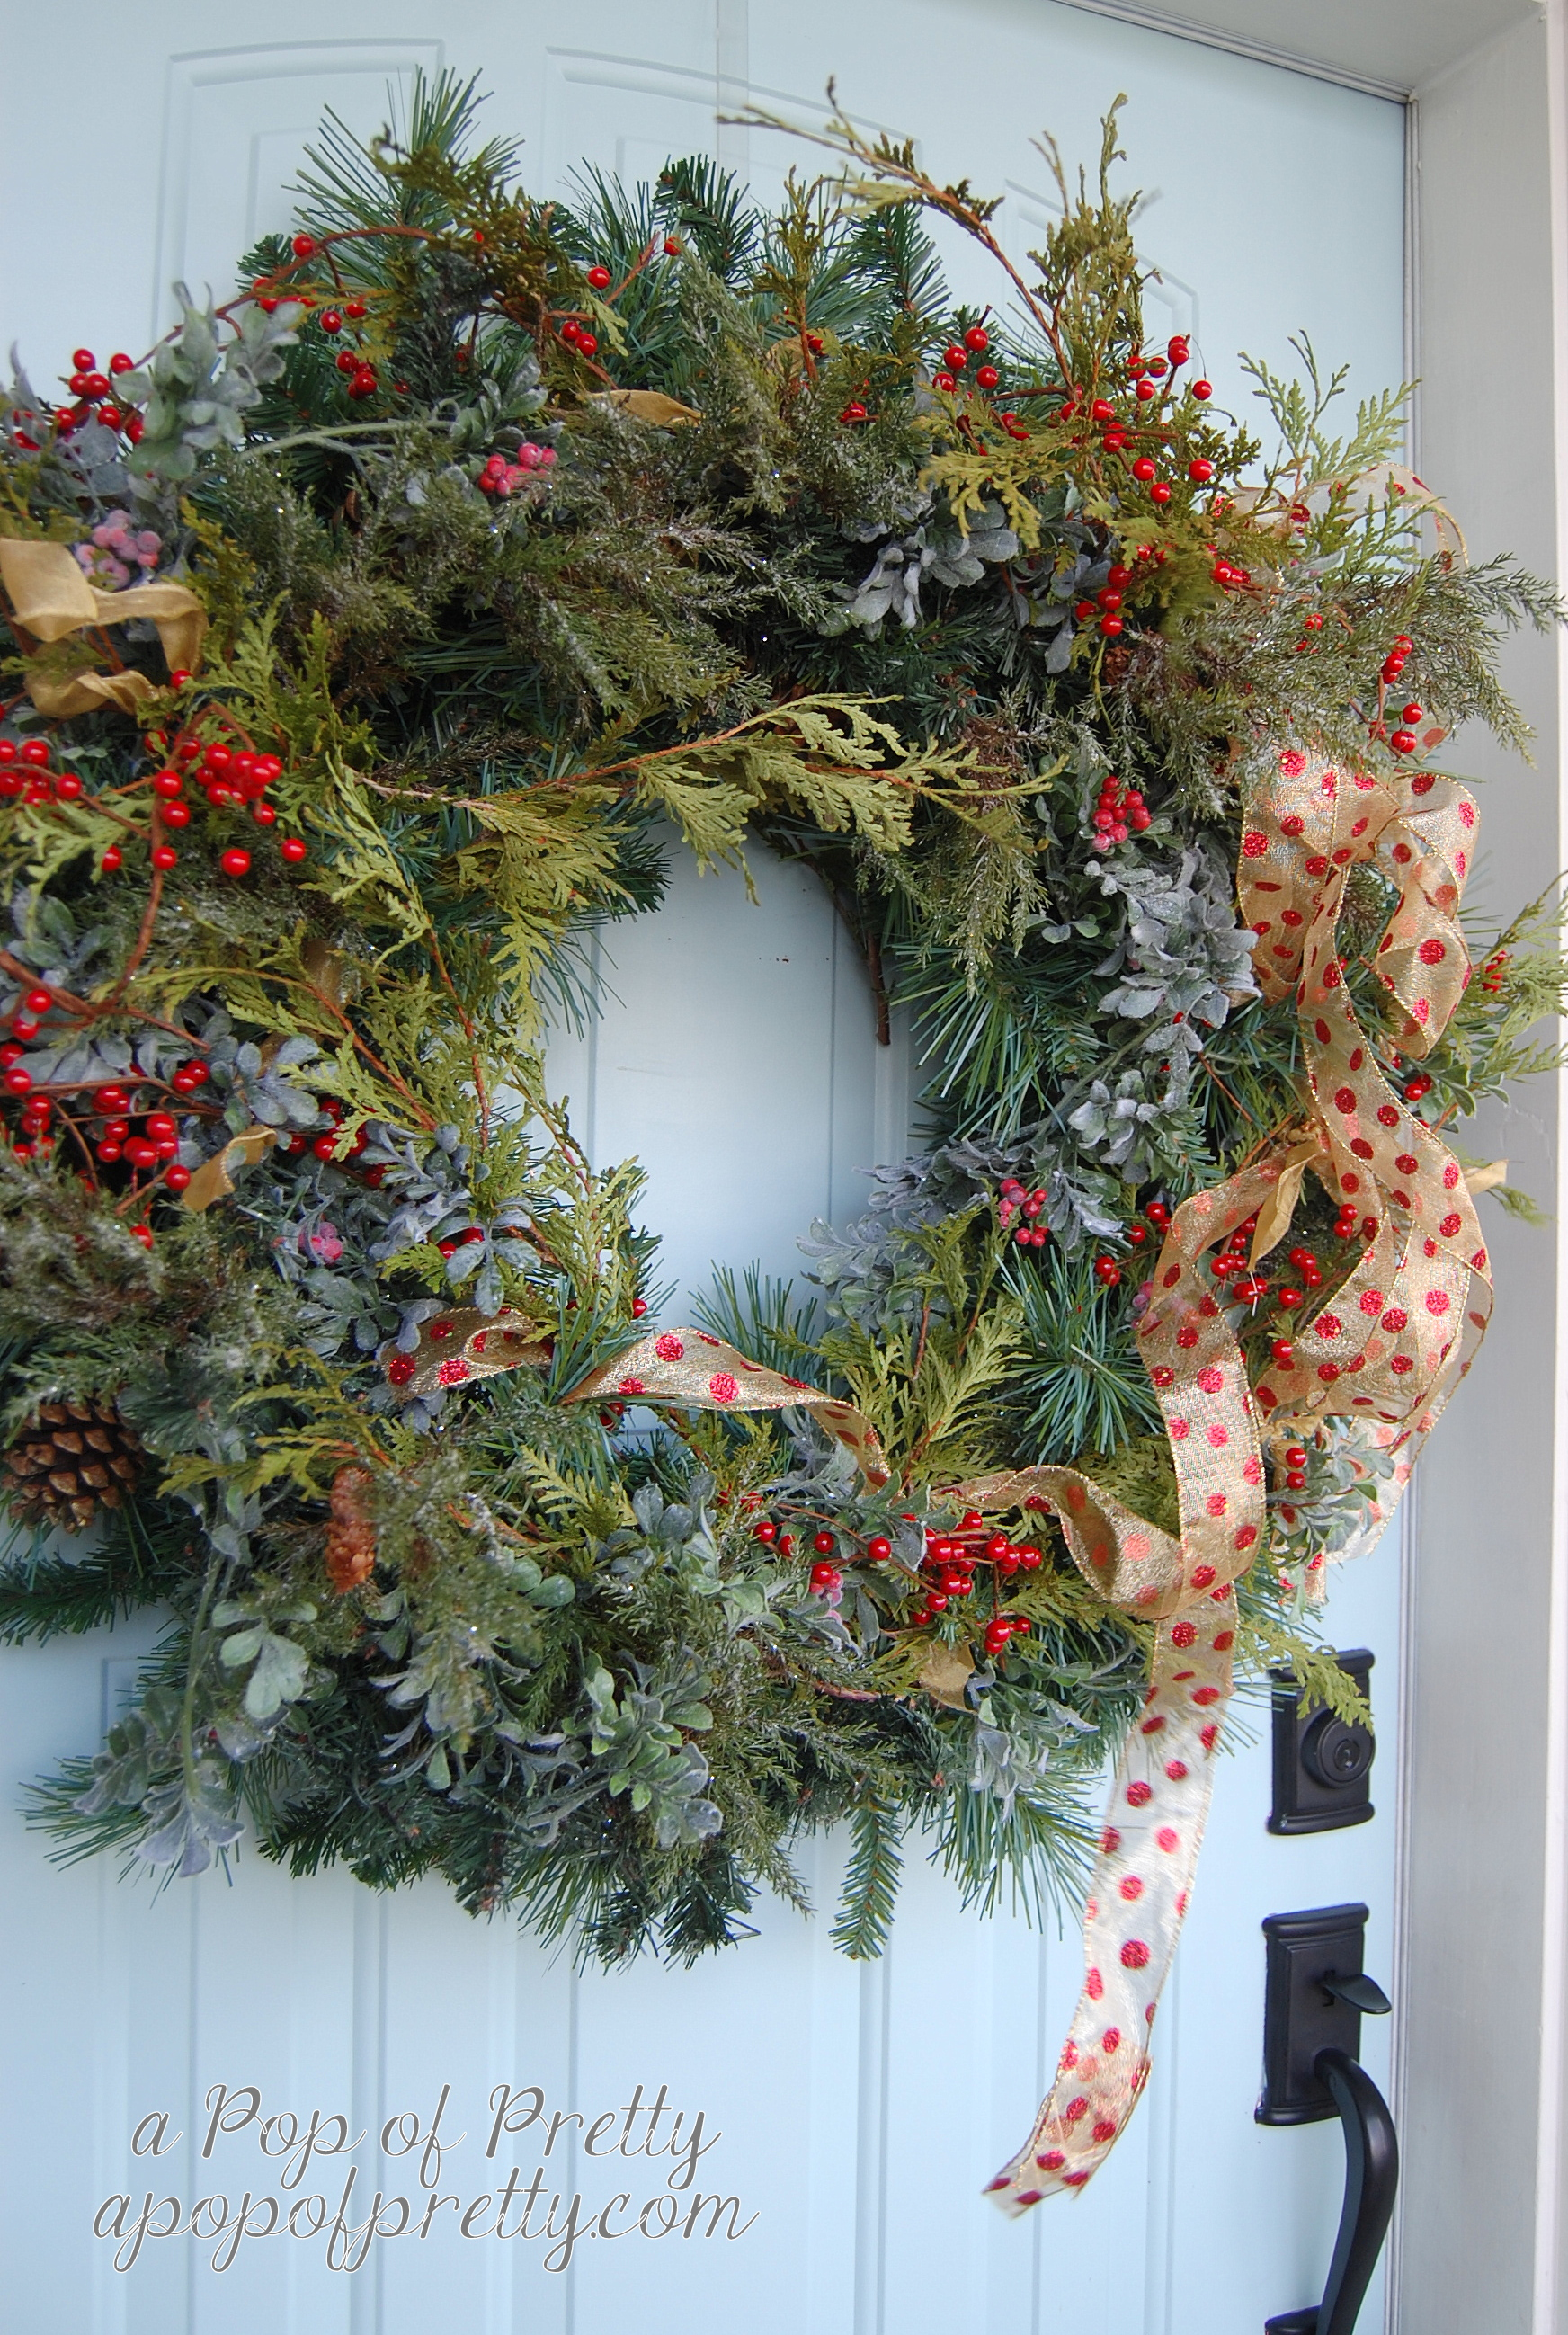 Christmas decorating ideas - wreath